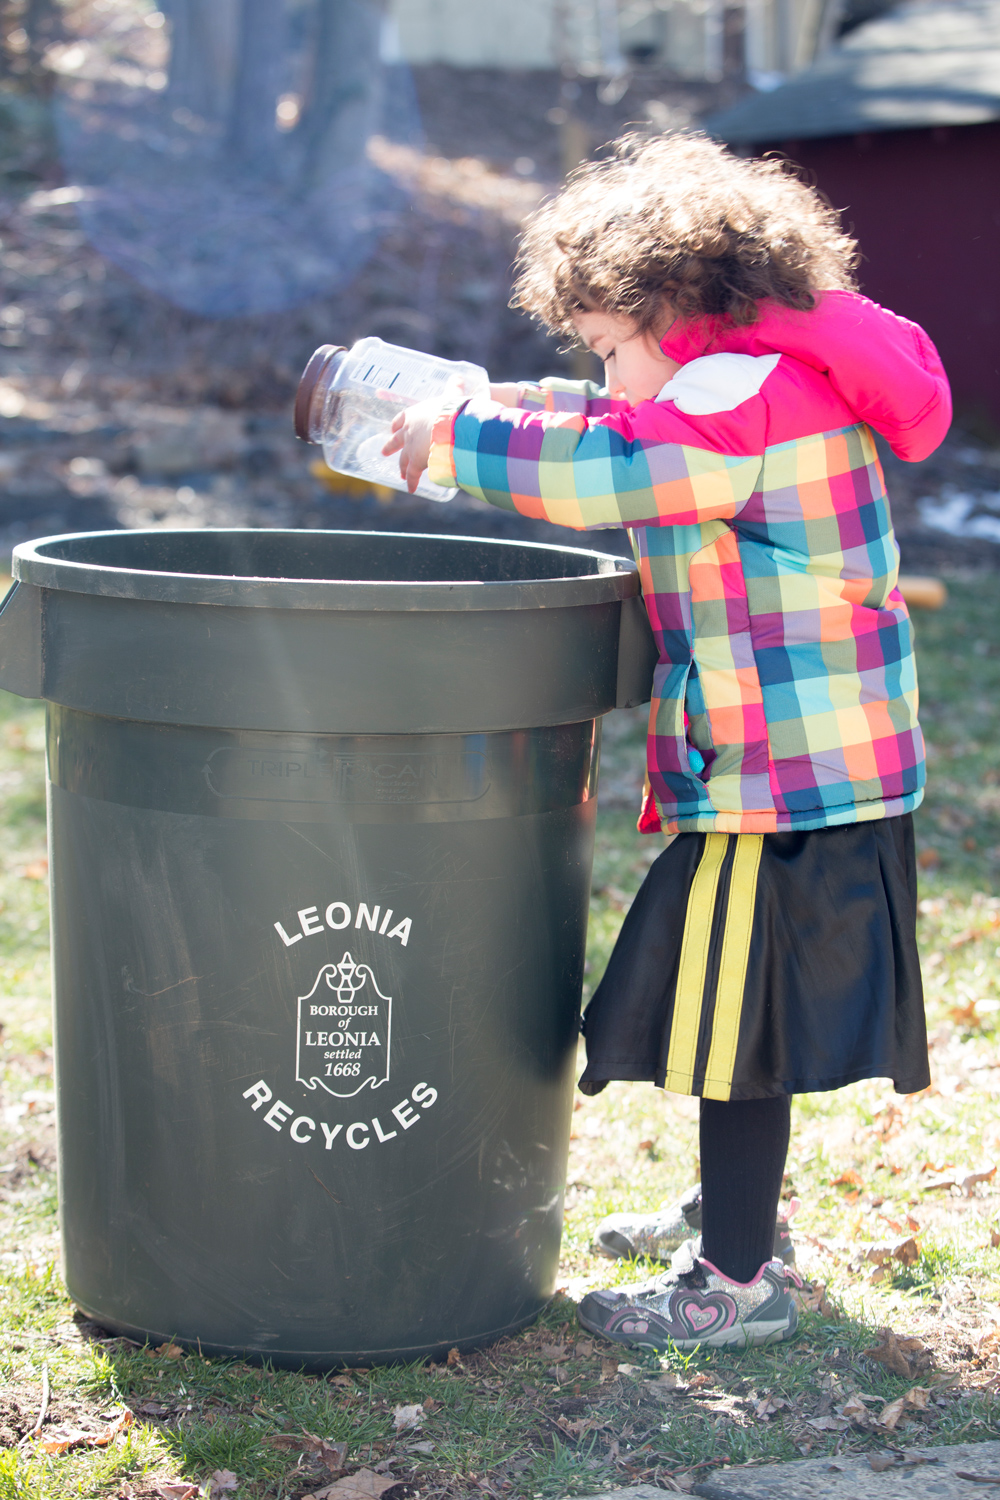 Recycling in Leonia